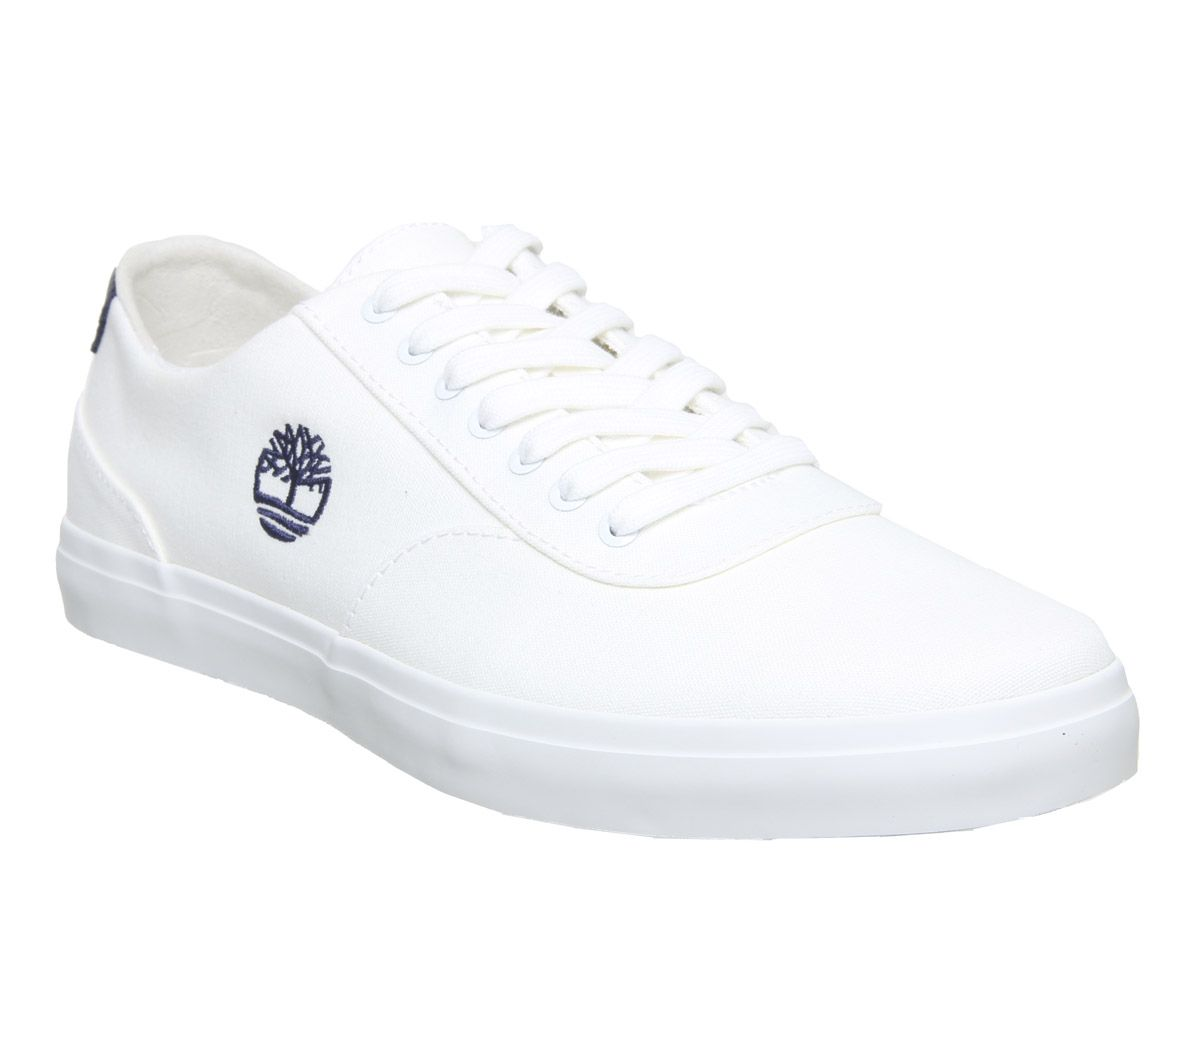 new product 9873a f5639 Union Sneaker Exclusive